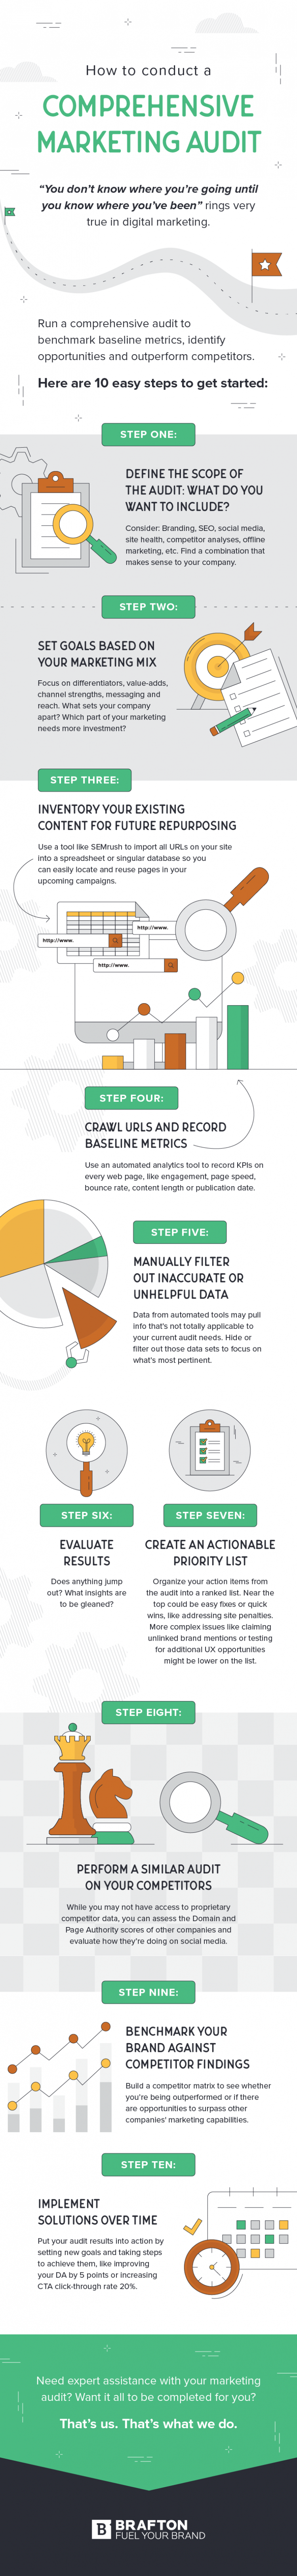 Infographic: How to conduct a comprehensive marketing audit